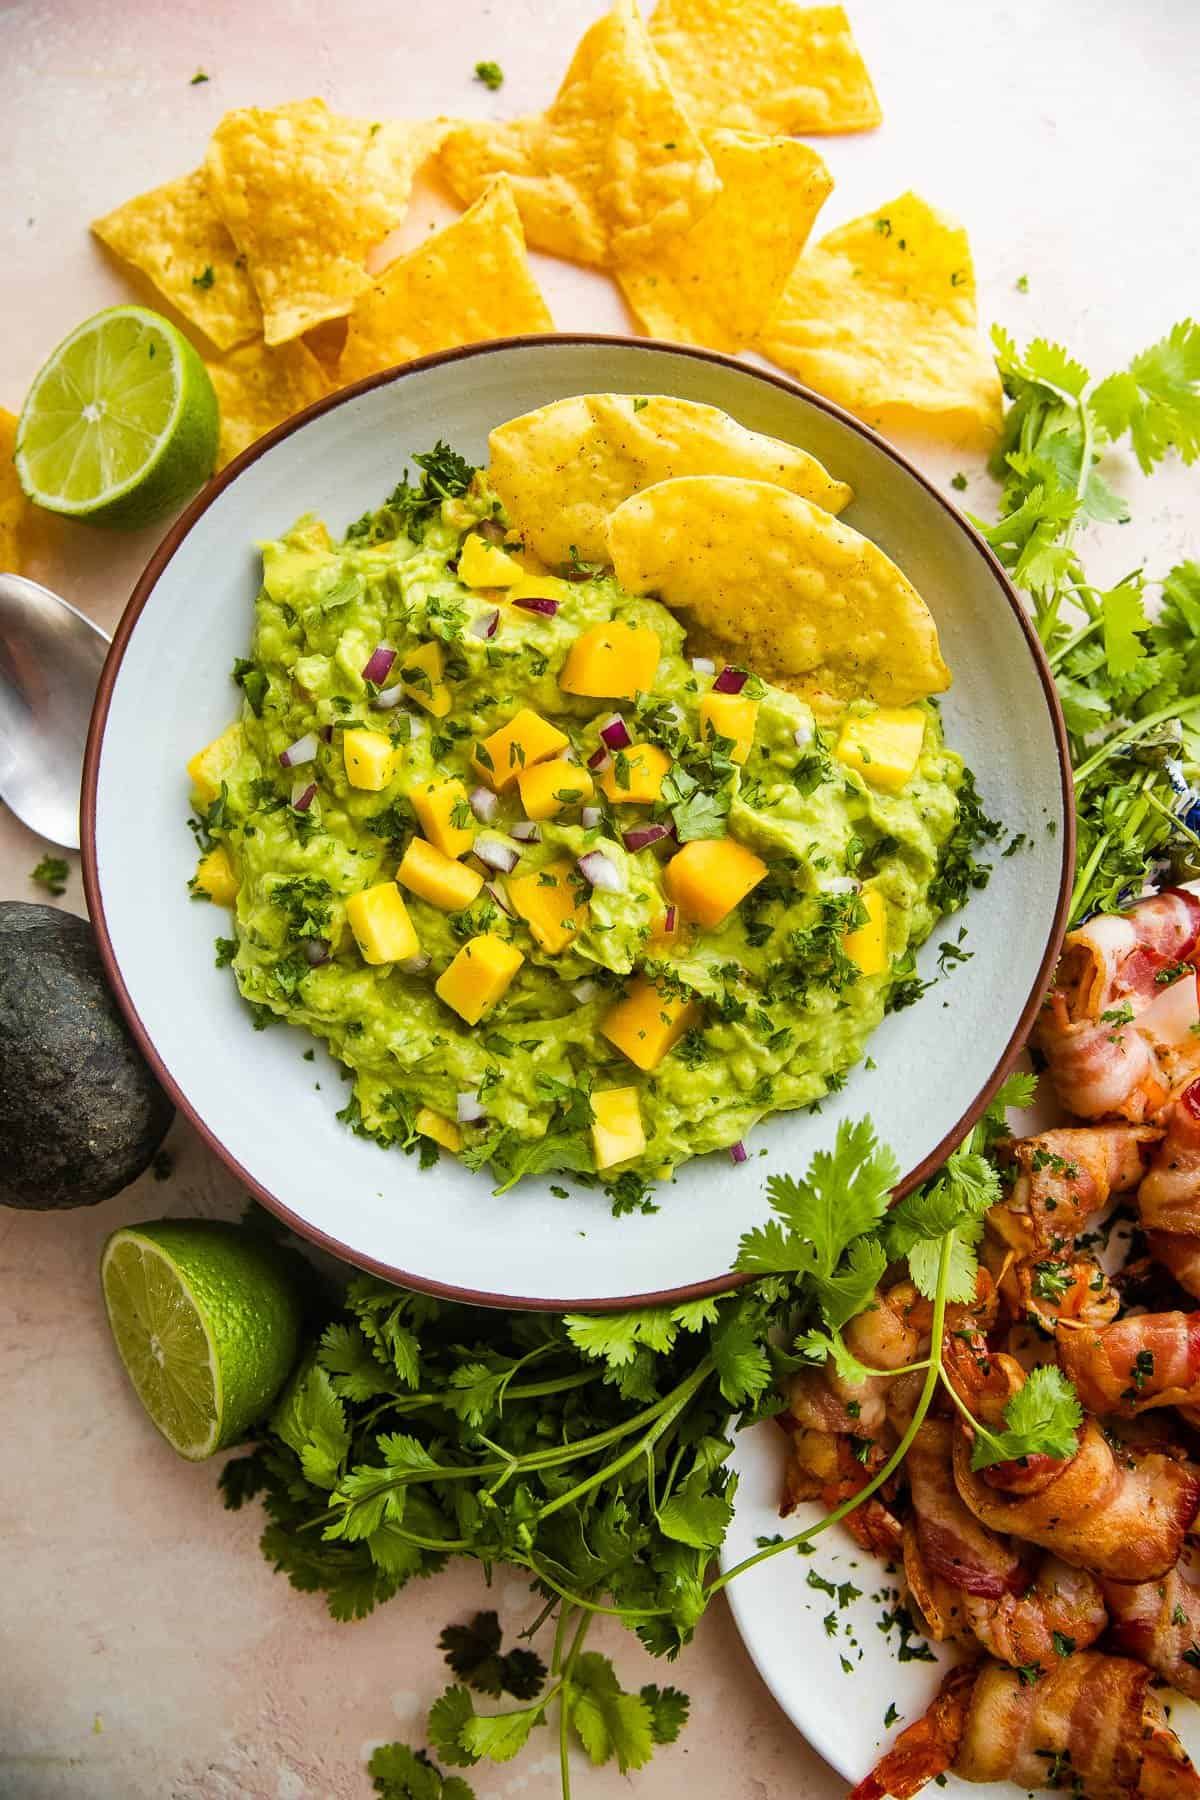 bowl filled with guacamole and mangoes with tortilla chips and barbecued meat served around it